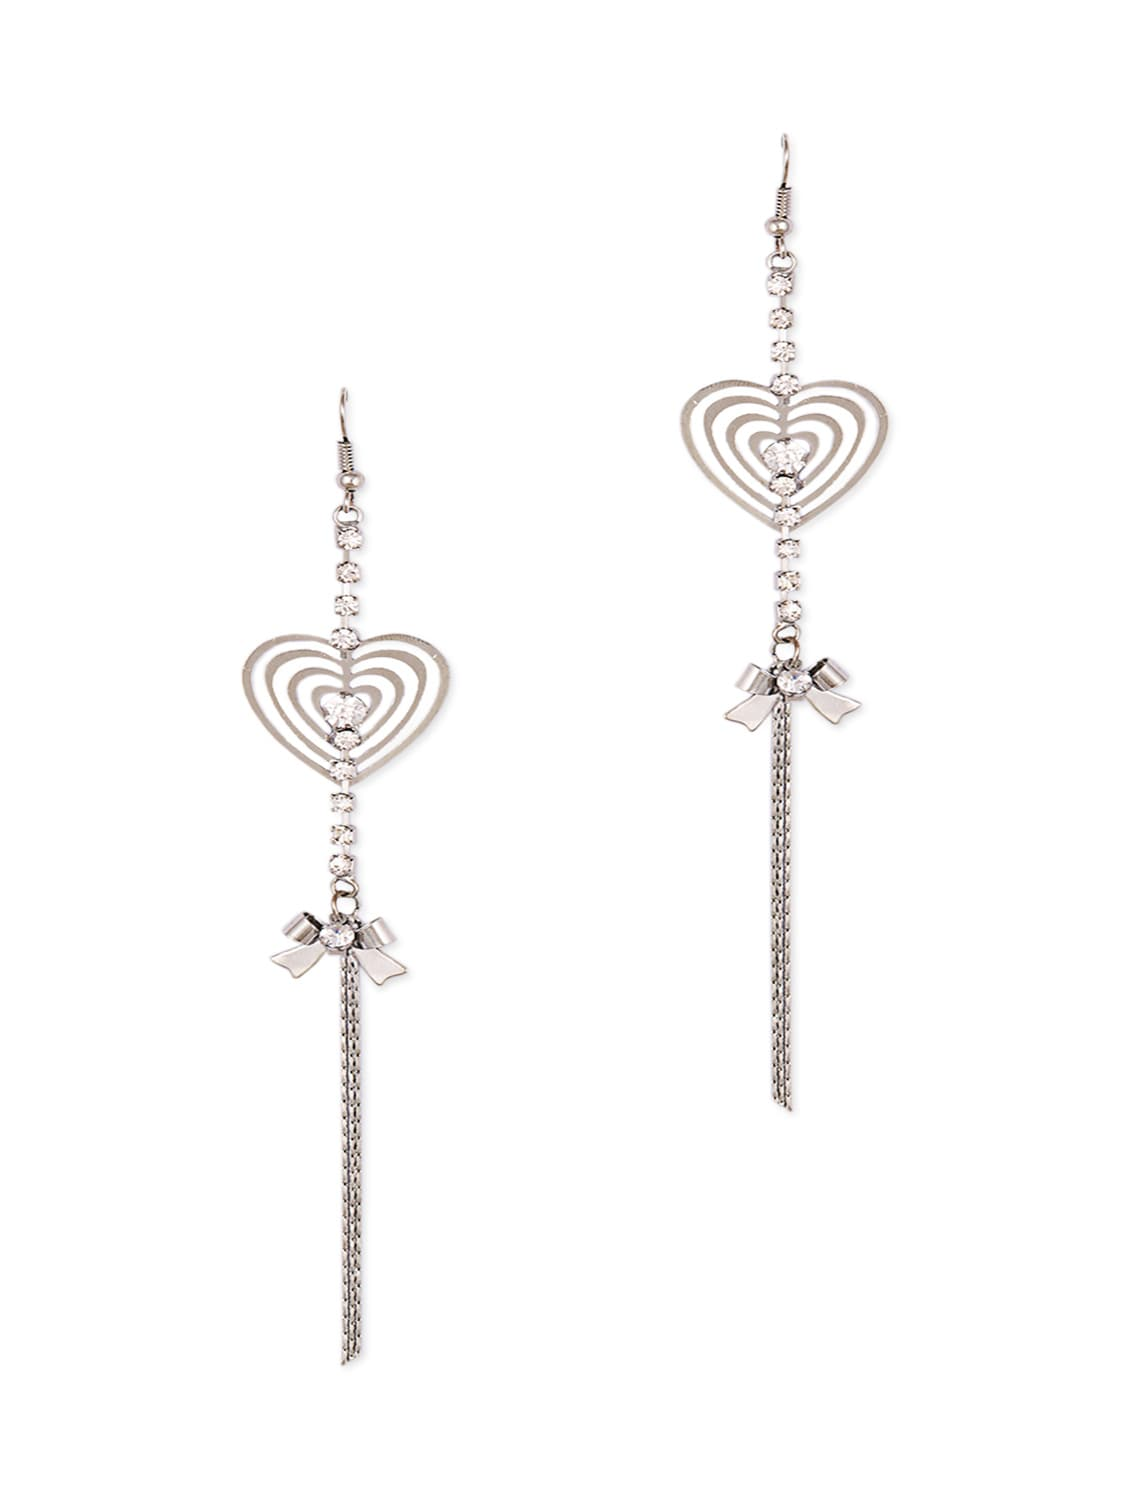 Silver Cut Out Heart With Stone  A Bow Dangler Earring - THE BLING STUDIO